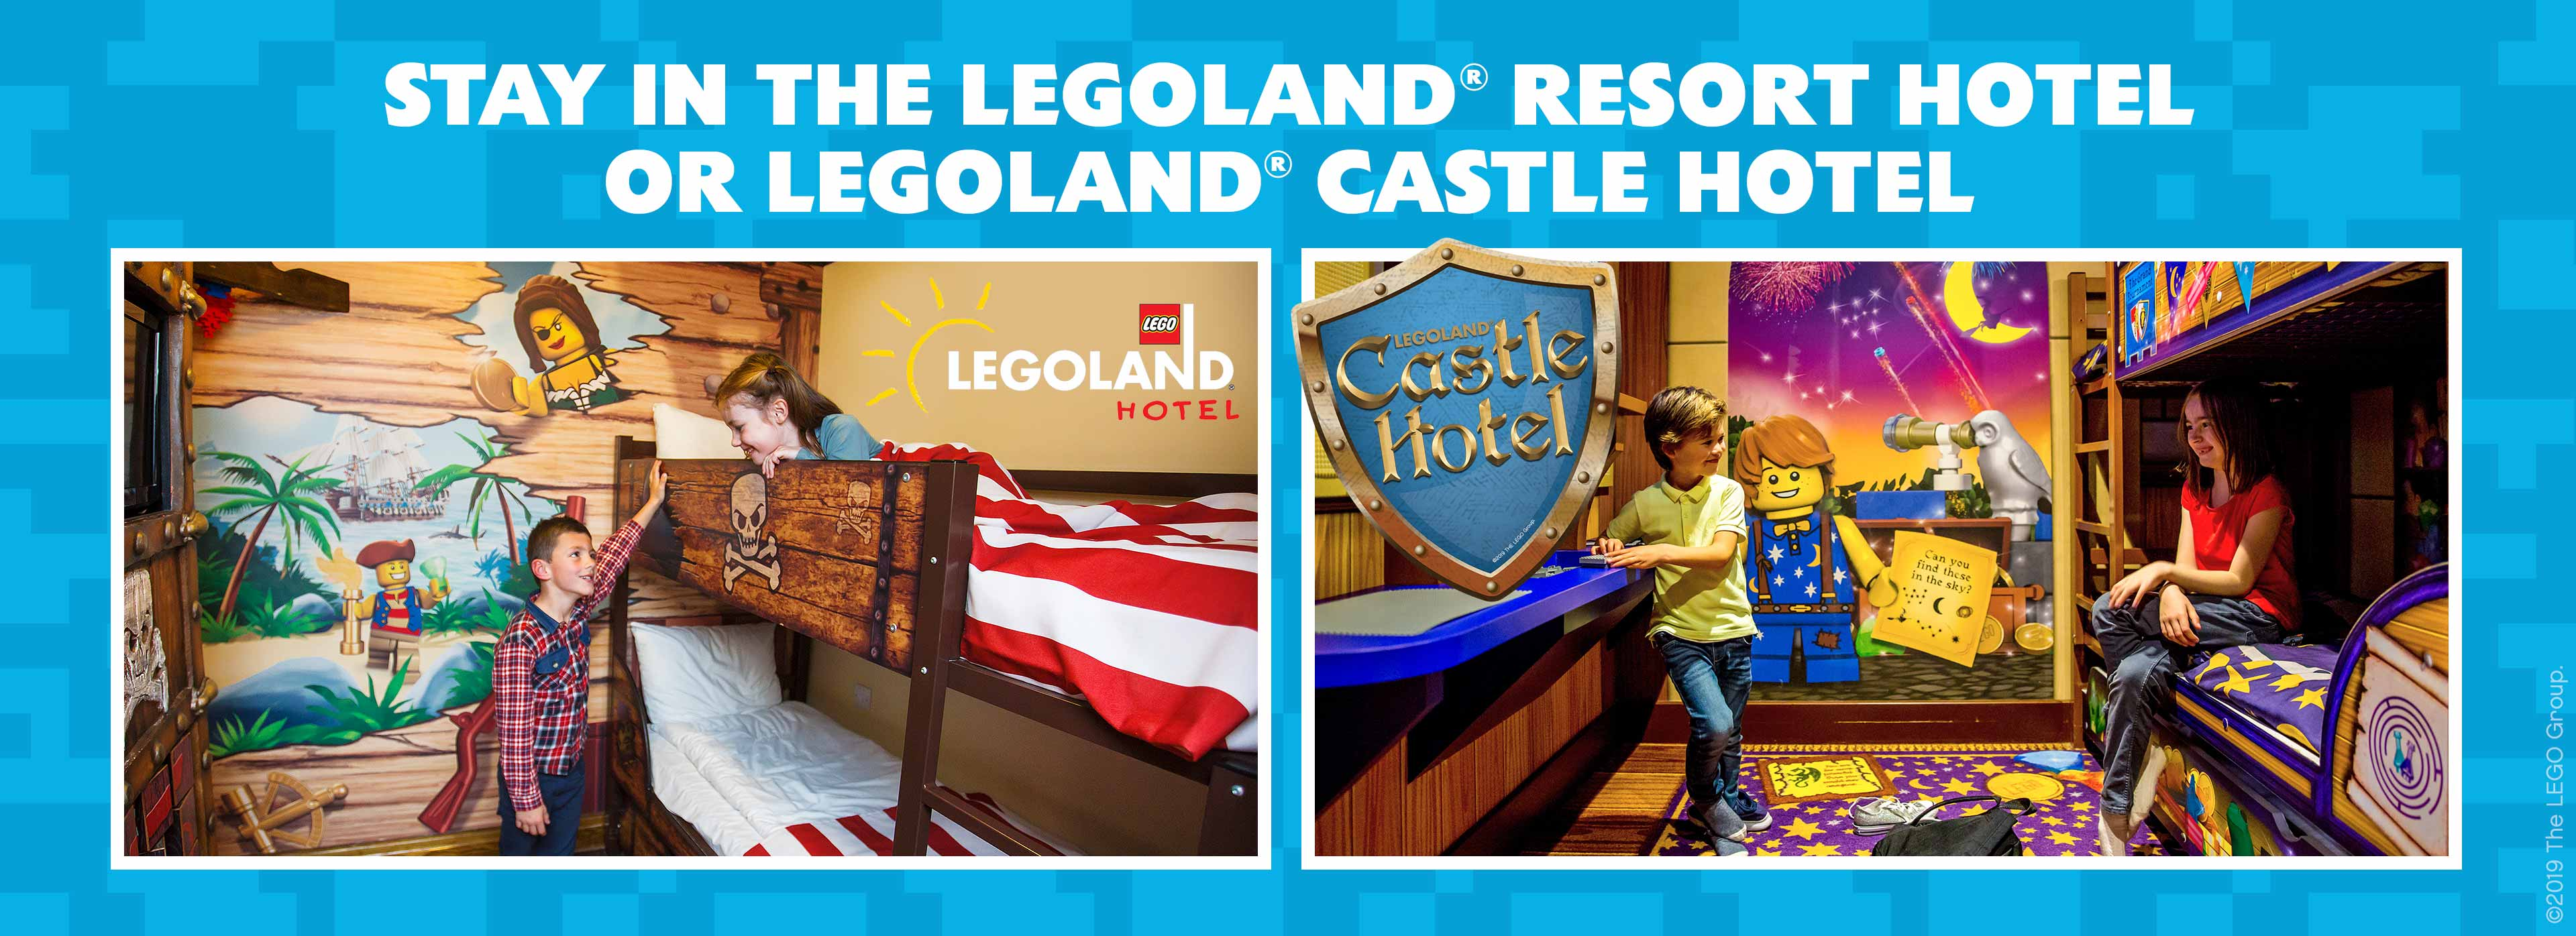 Resort accommodation at the LEGOLAND Windsor Resort